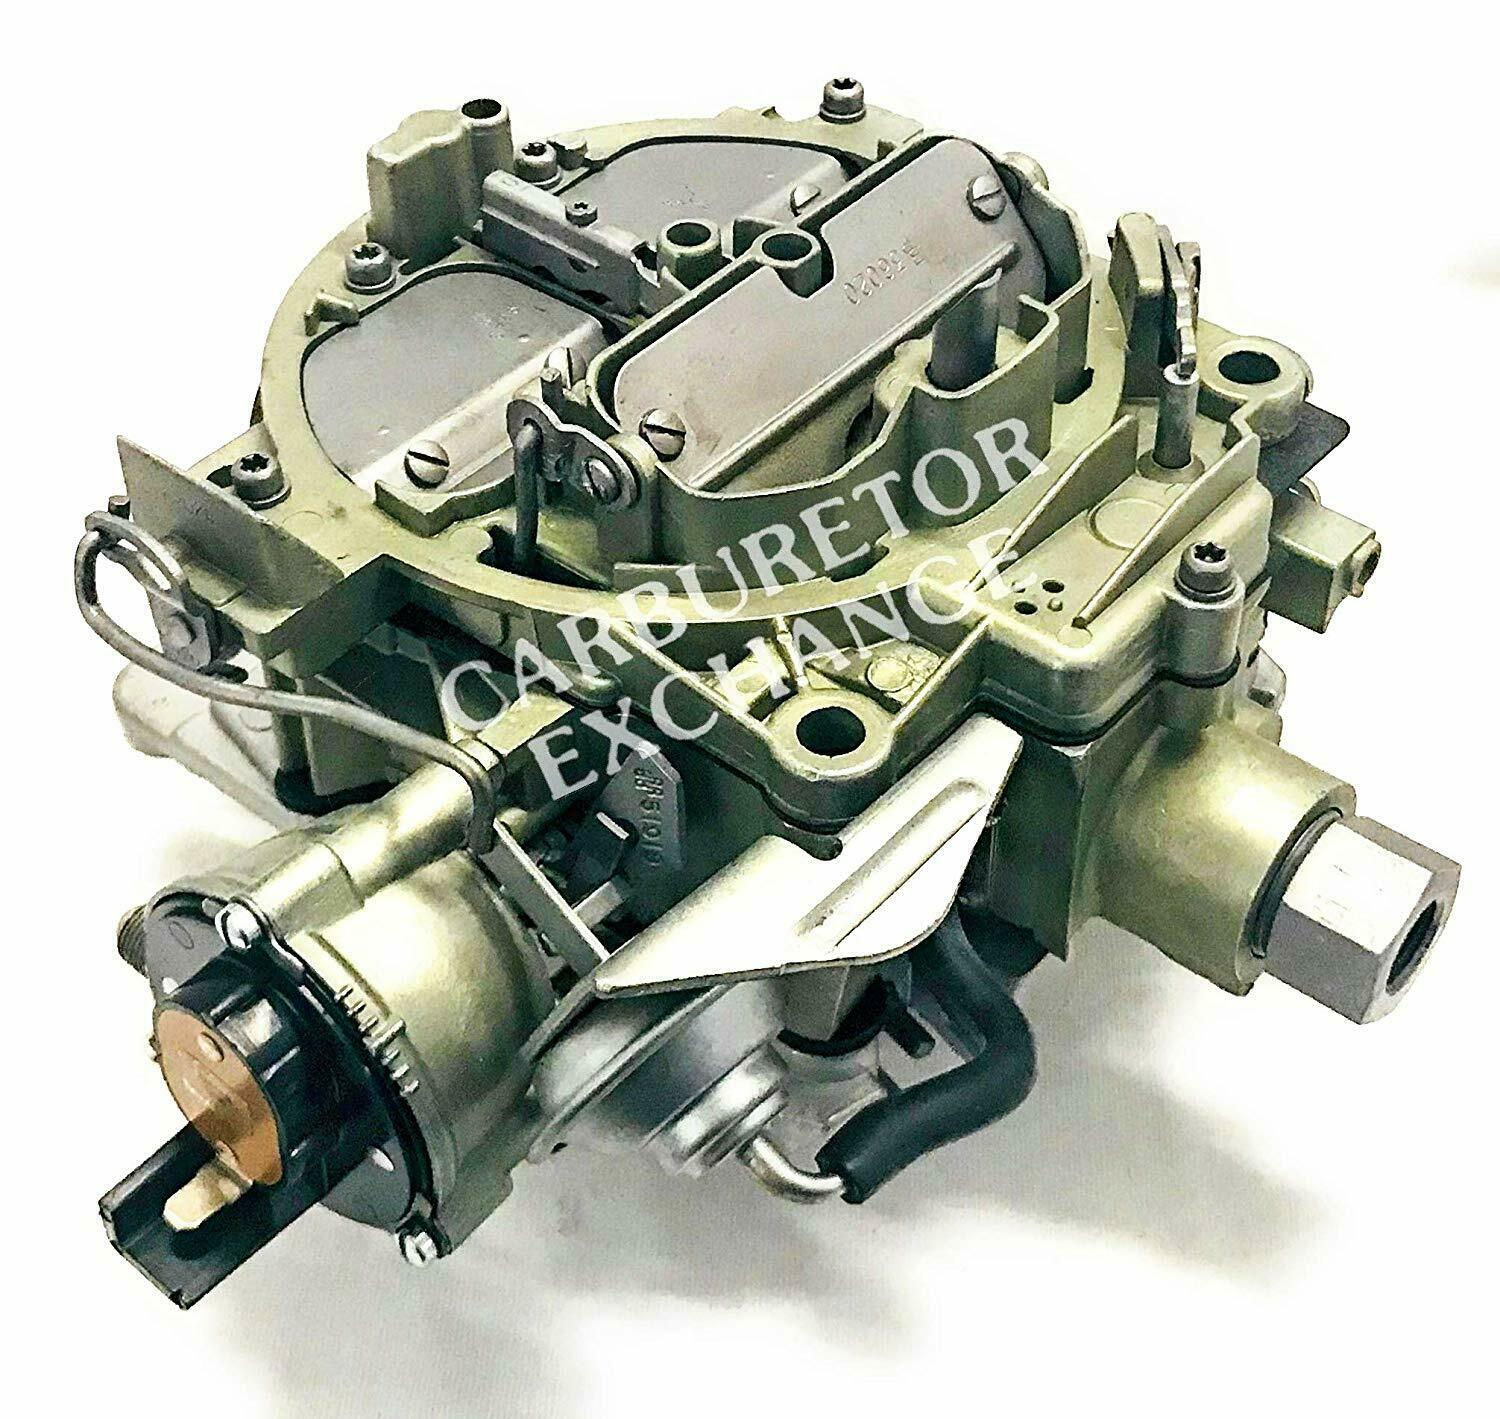 Buy Used Carburetors from Top-Rated Salvage Yards